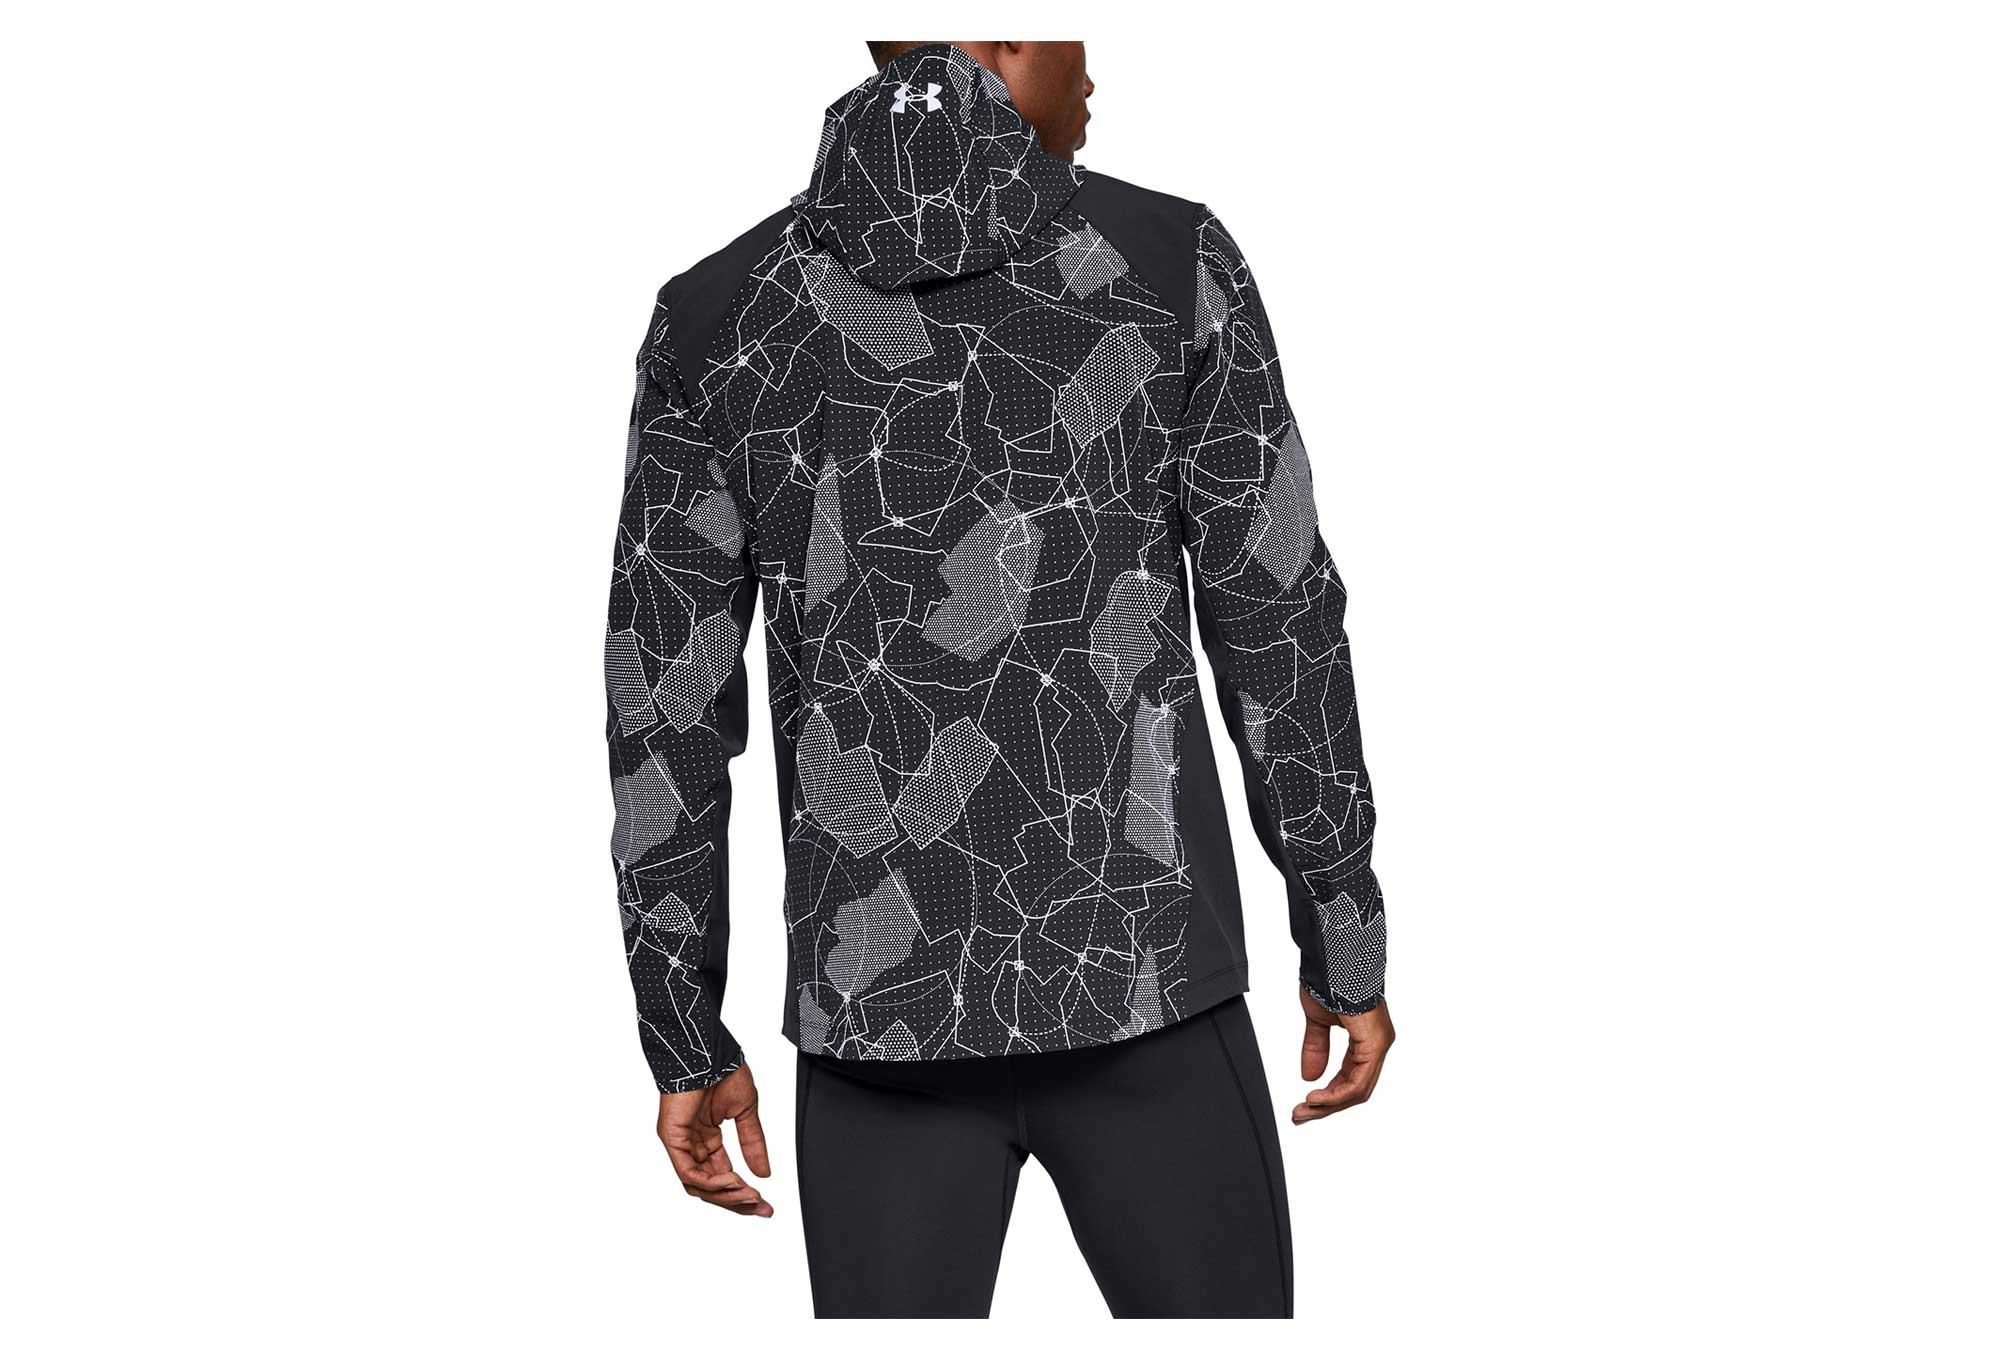 Bolsa Cha gatito  Under Armour Outrun The Storm Printed Water-resistant Jacket Black |  Alltricks.com